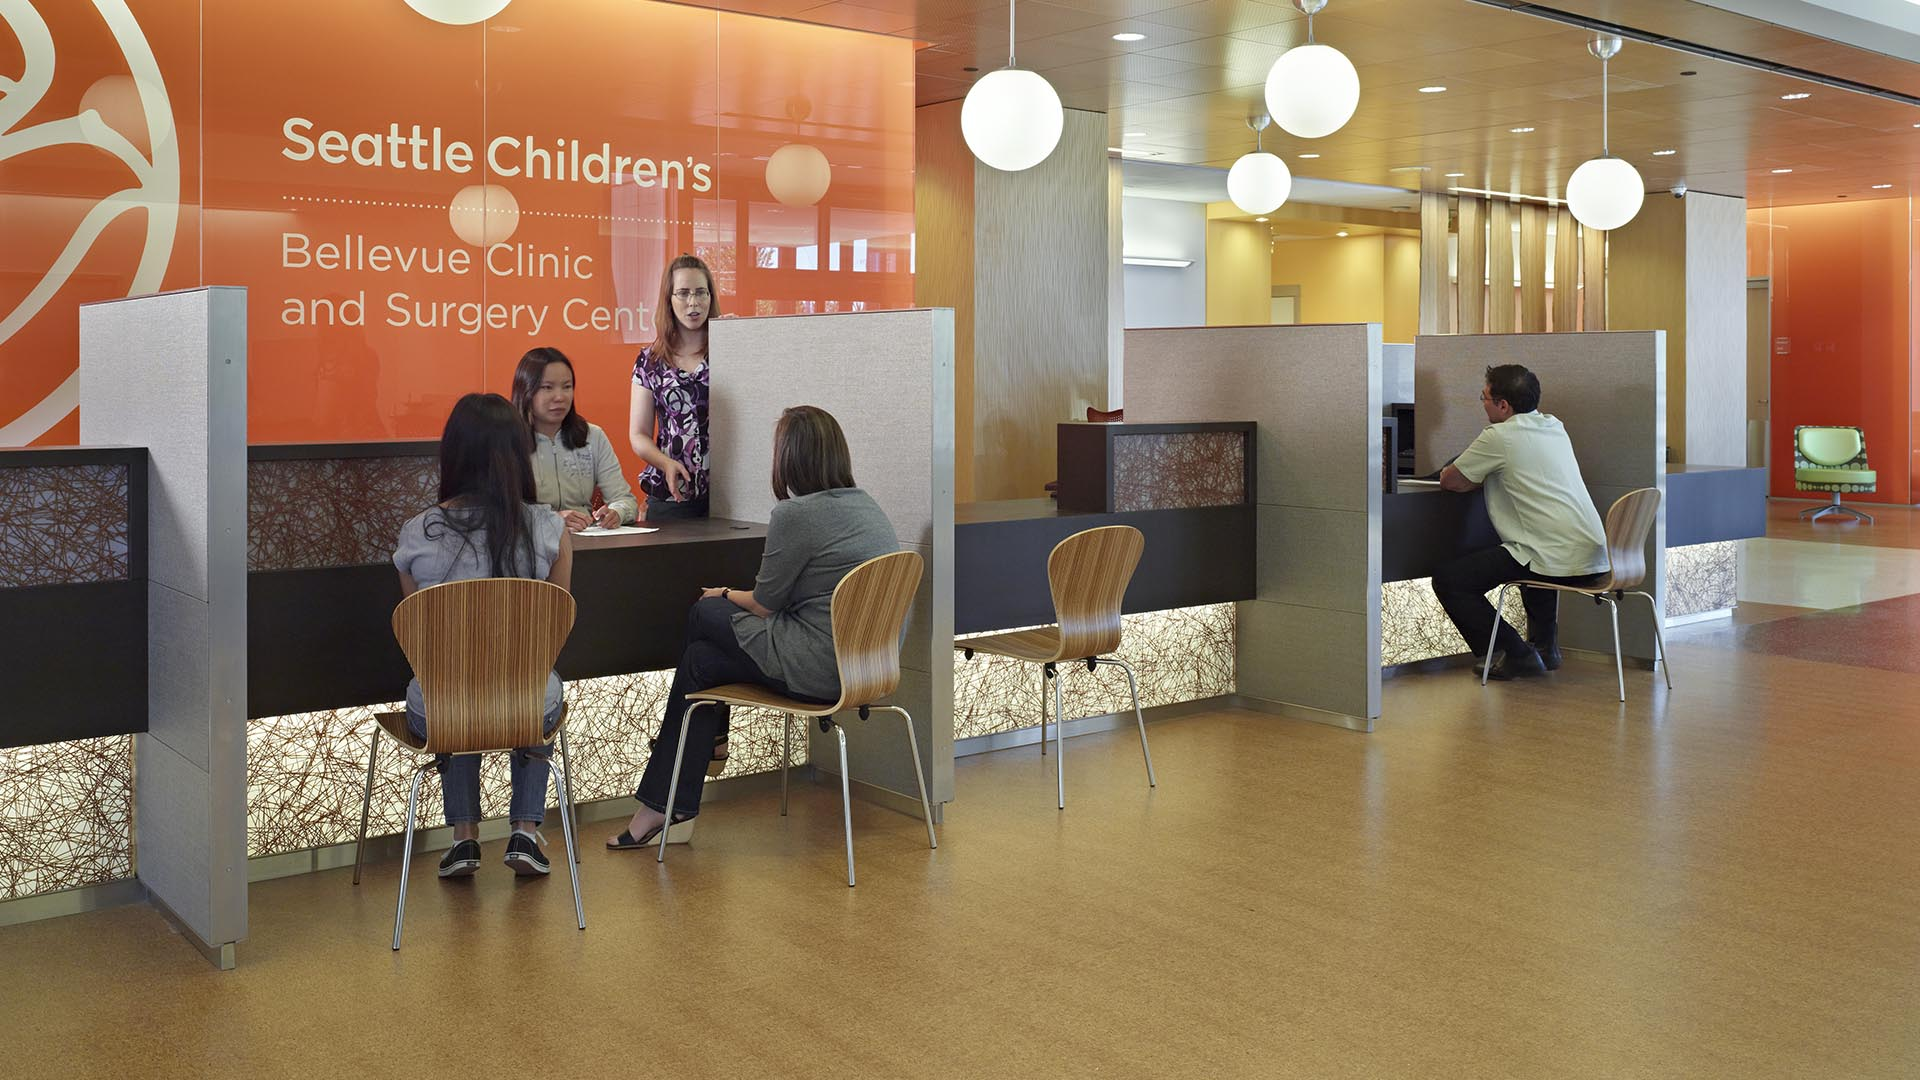 seattle childrens clinic opens - HD 1920×1080